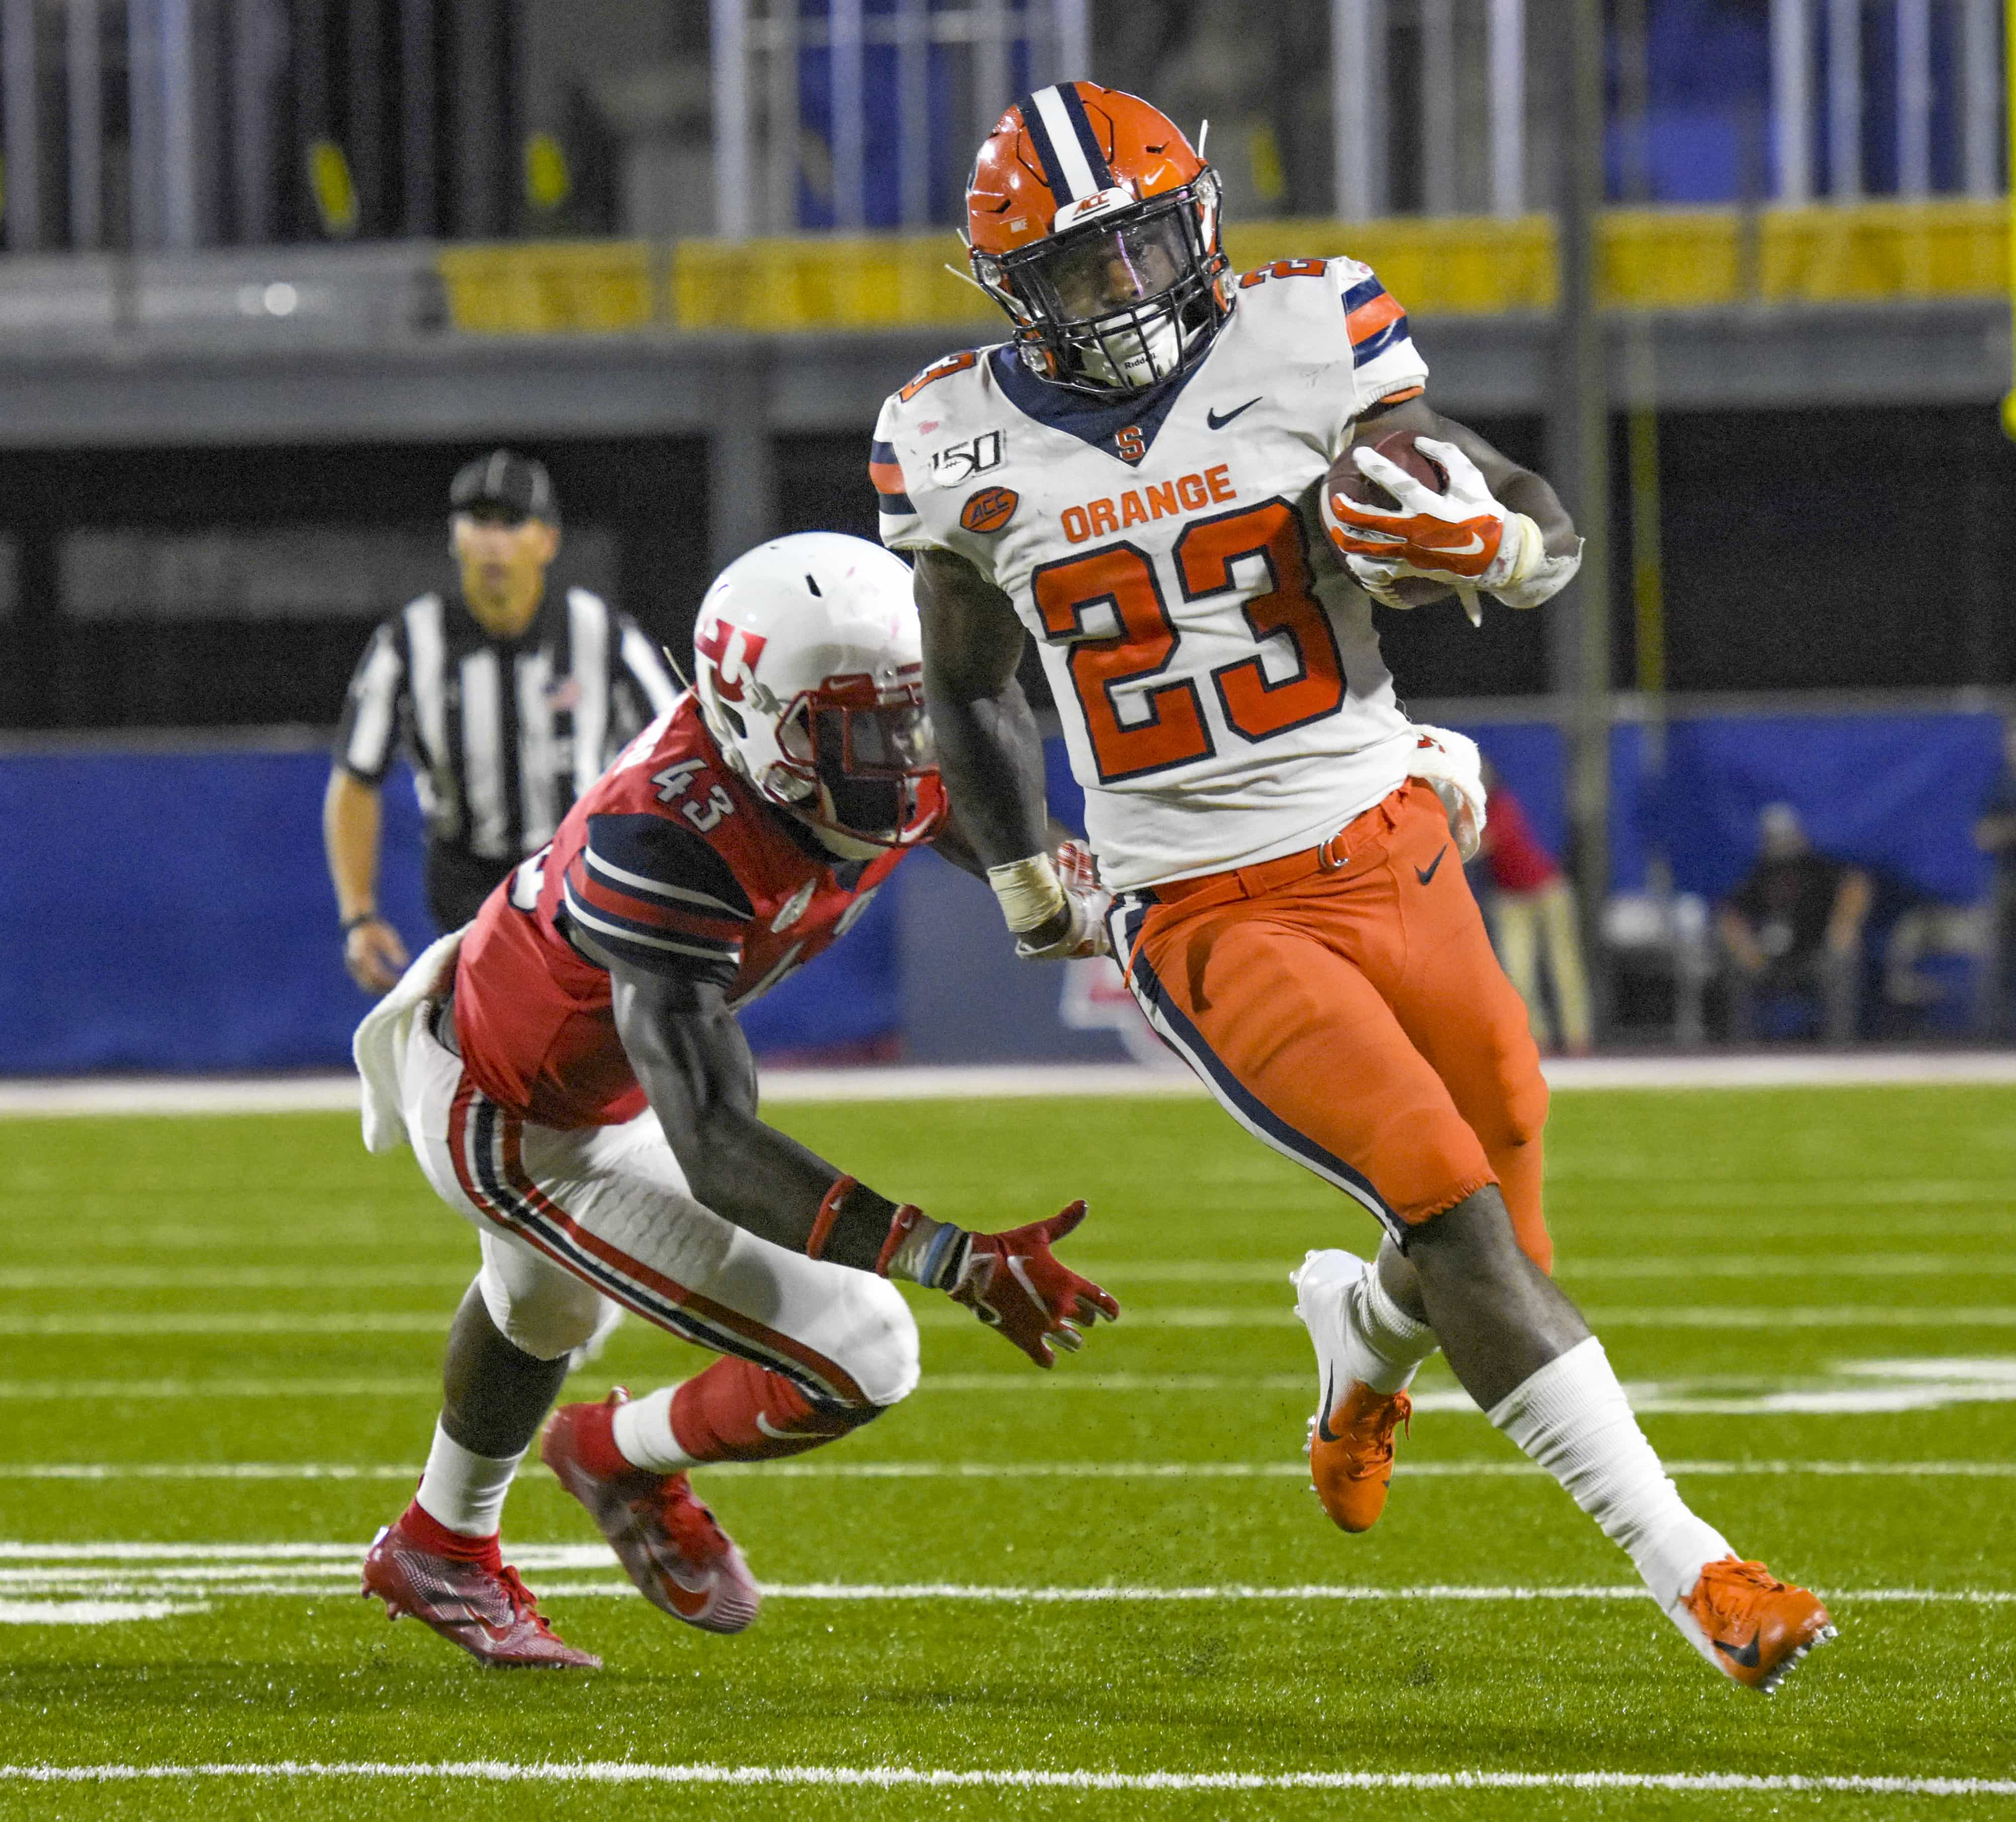 Junior running back Abdul Adams takes the ball down the field for an Orange first down against Liberty on Saturday.